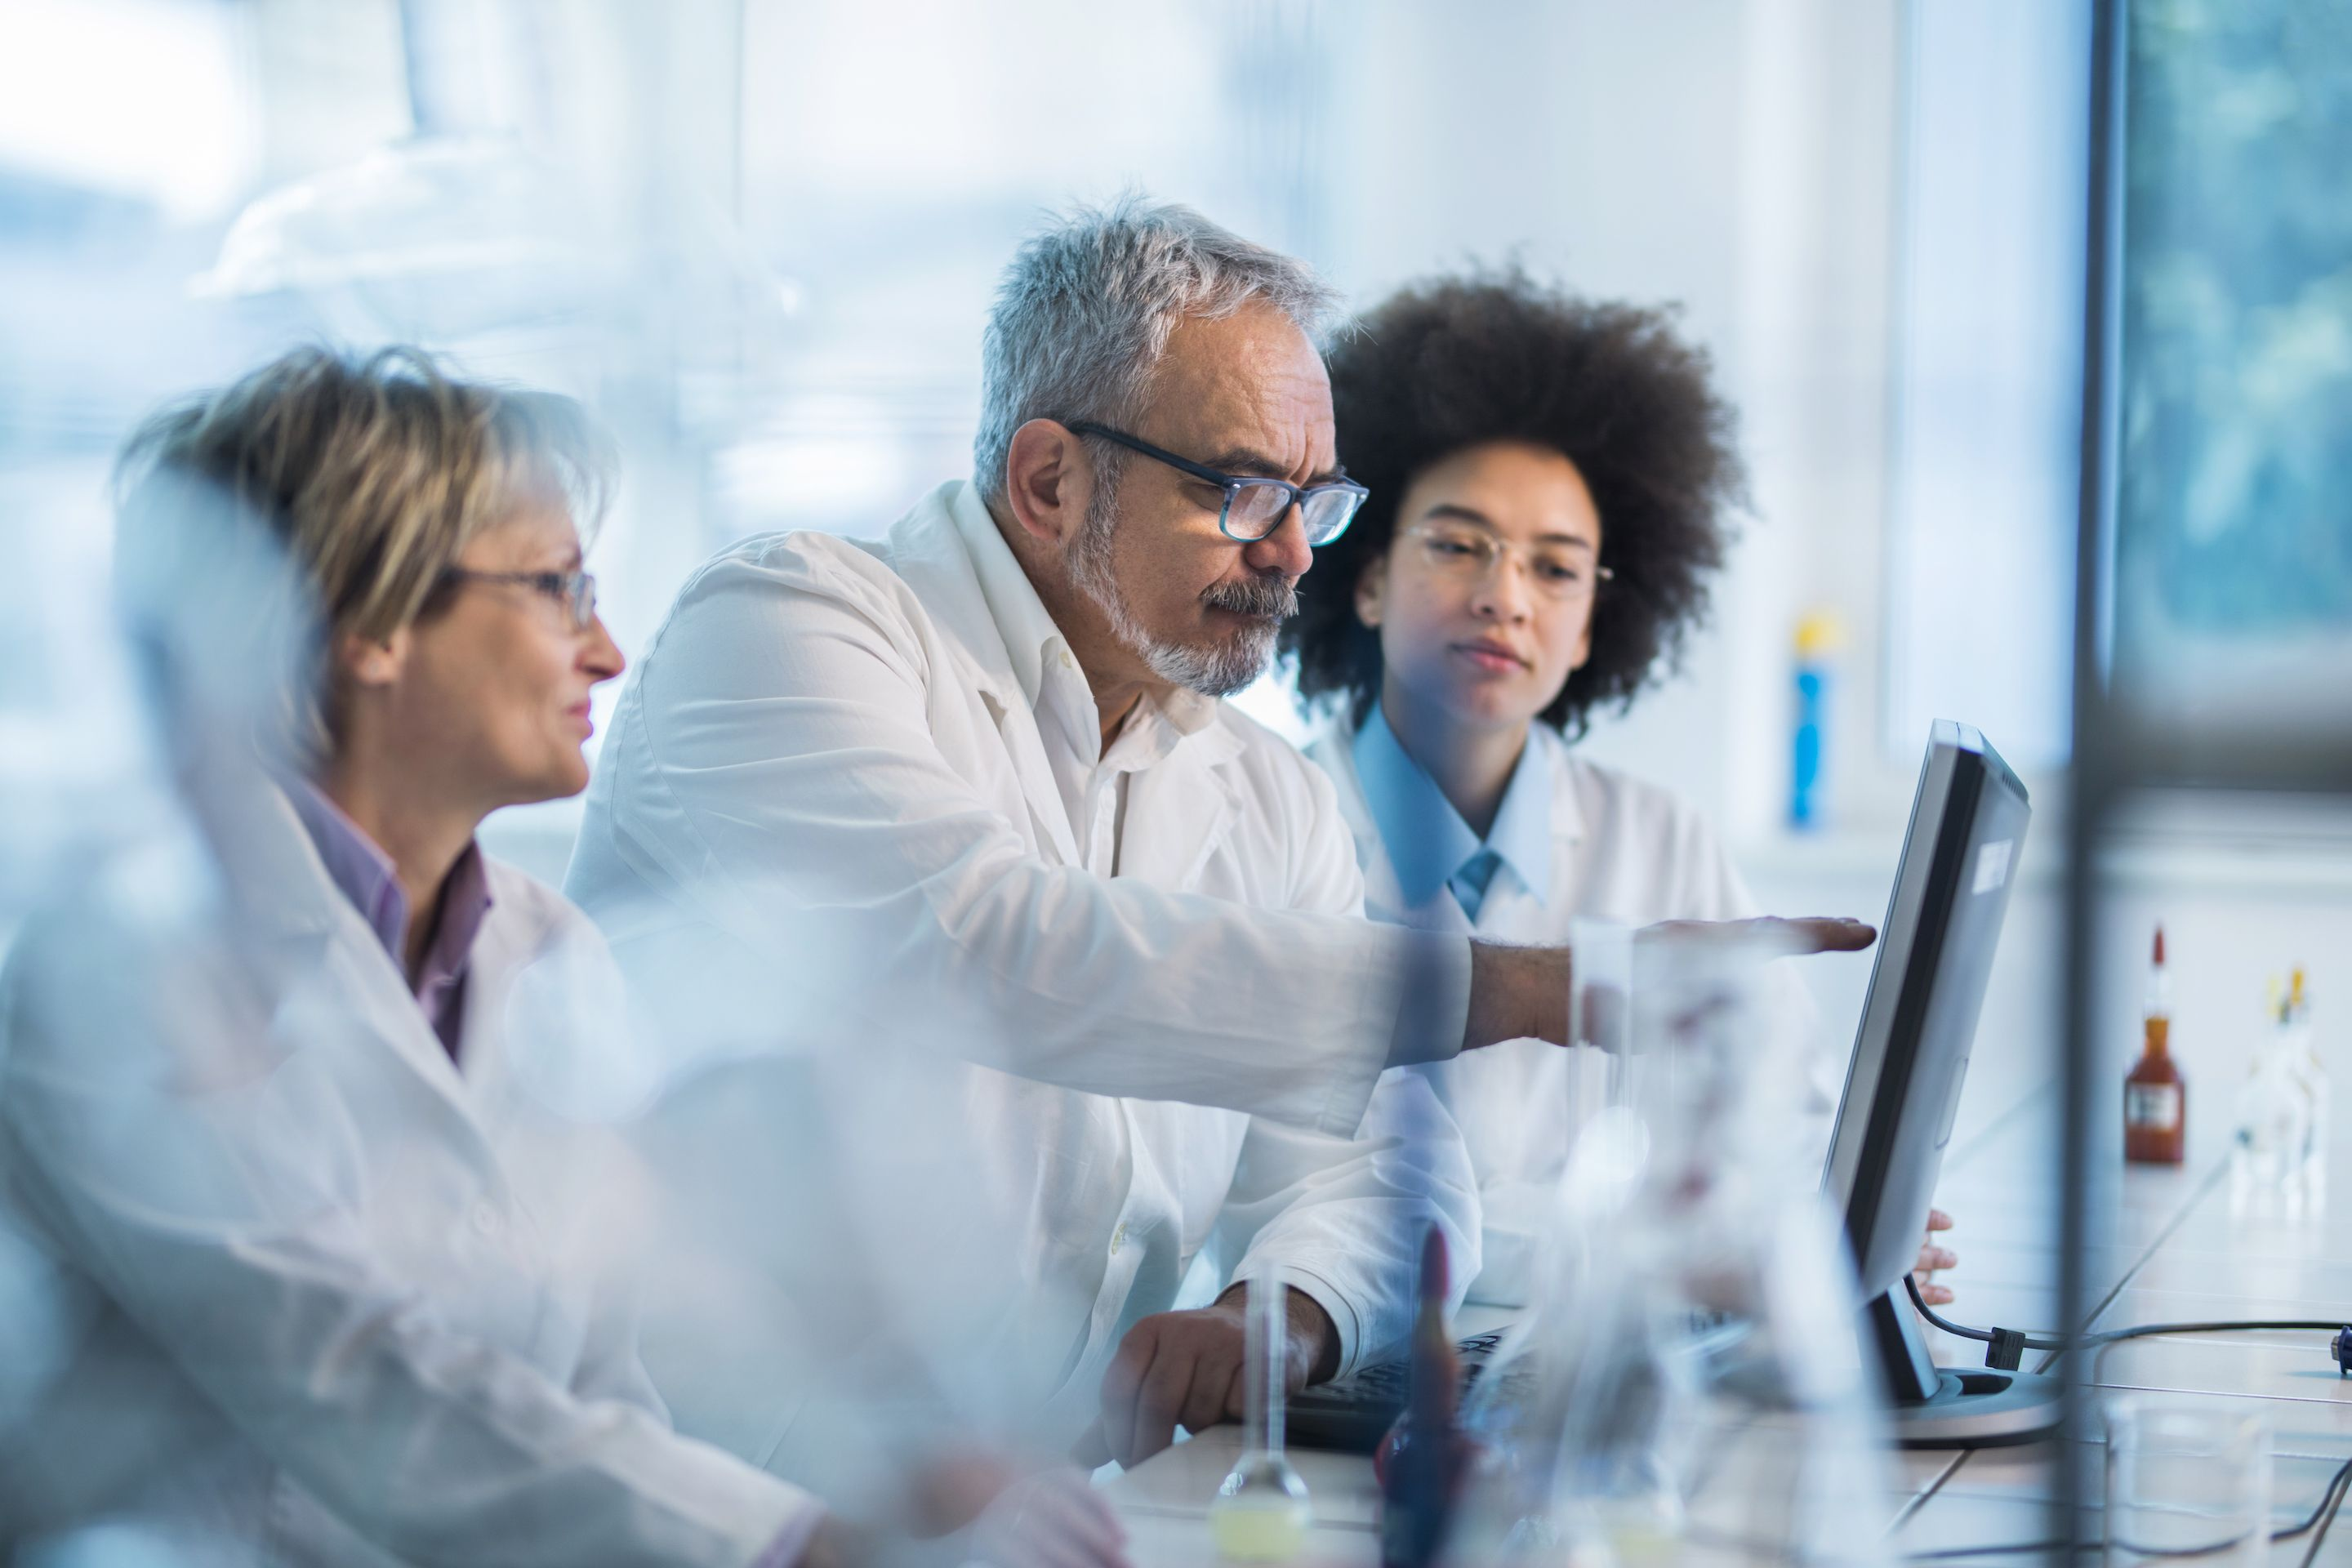 Female and male scientists in lab using touchscreen